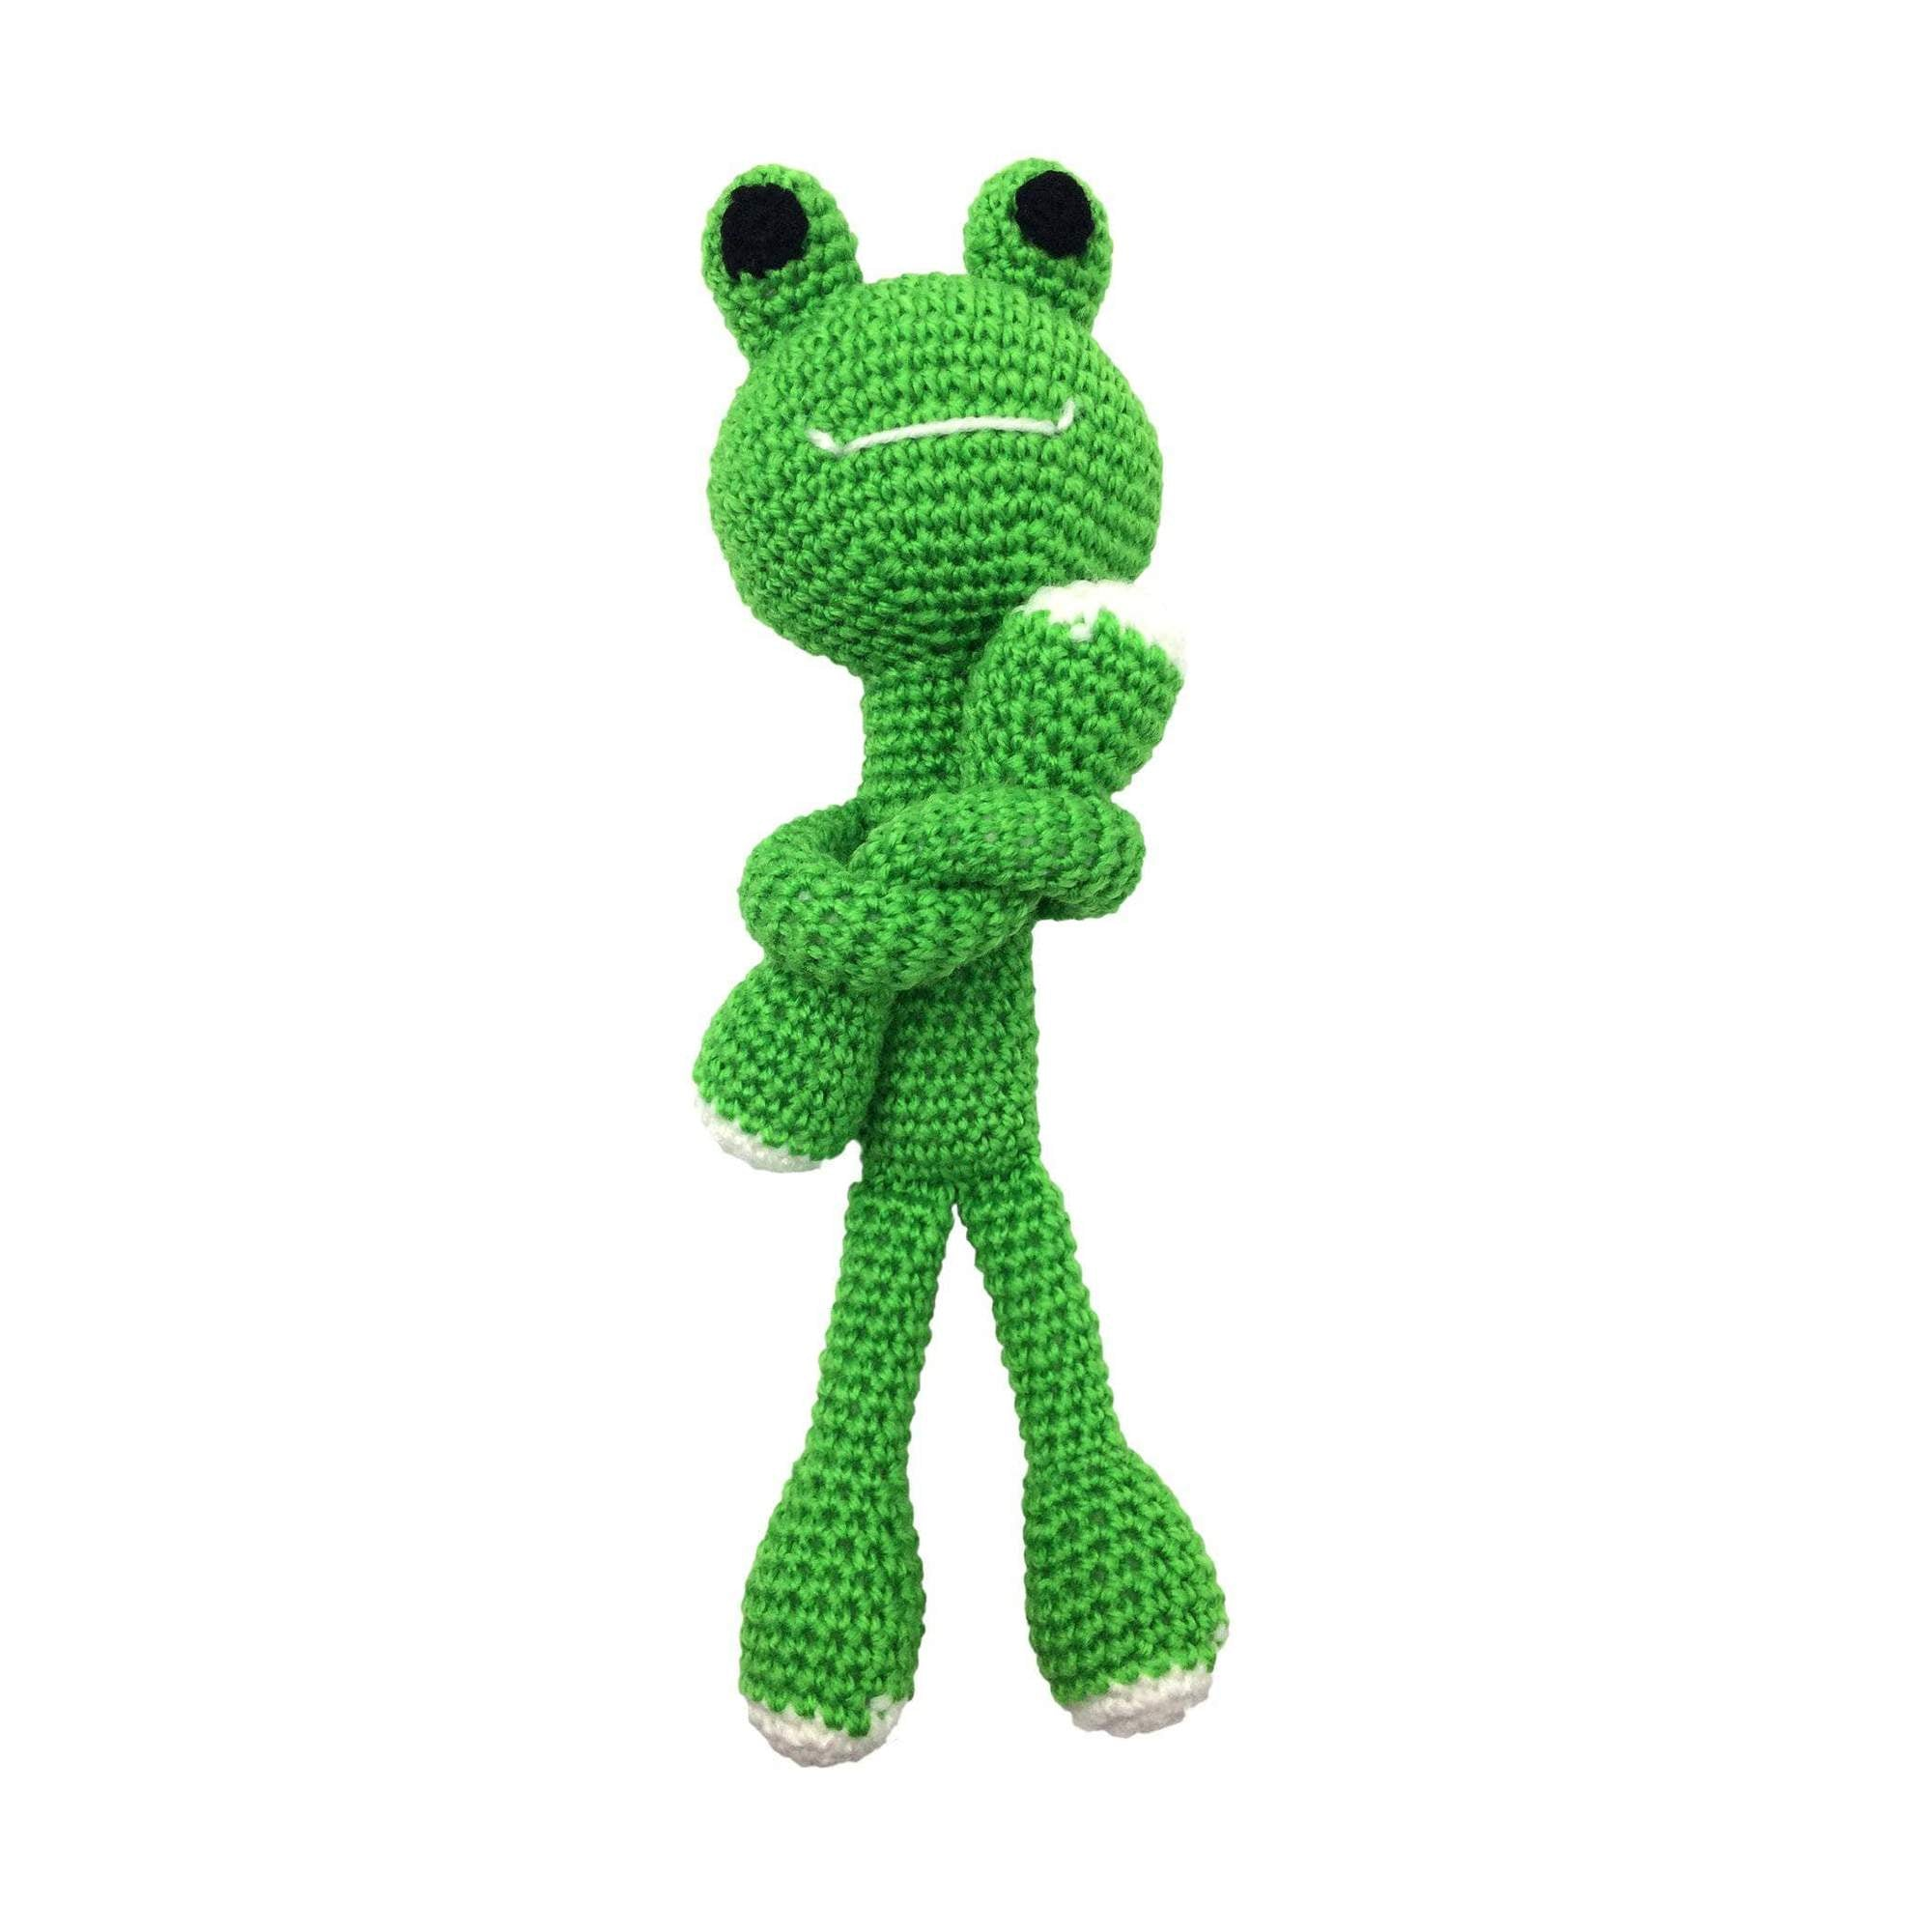 DIY FROG AMIGURUMI KNIT & CROCHET STARTER KIT-Darn Good Yarn-superbulky